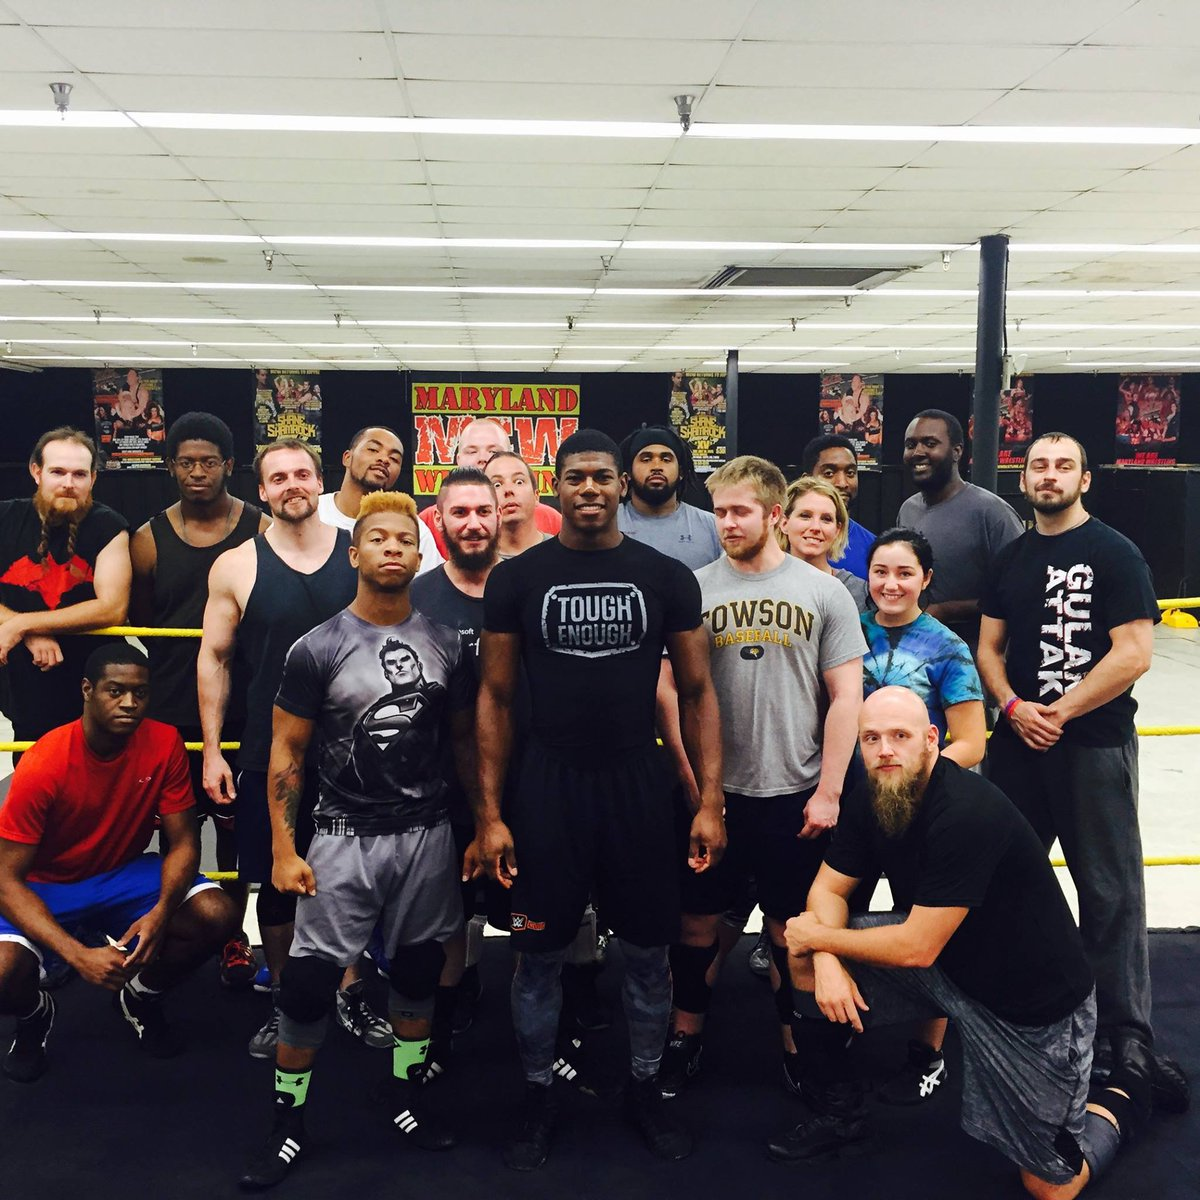 Join #NXT Star @VelveteenWWE &amp; @itsLioRush as graduates of the #MCW Training Center who made their Dream a Reality!   http:// bit.ly/2dvZgze  &nbsp;  <br>http://pic.twitter.com/ie2ELAxQTW